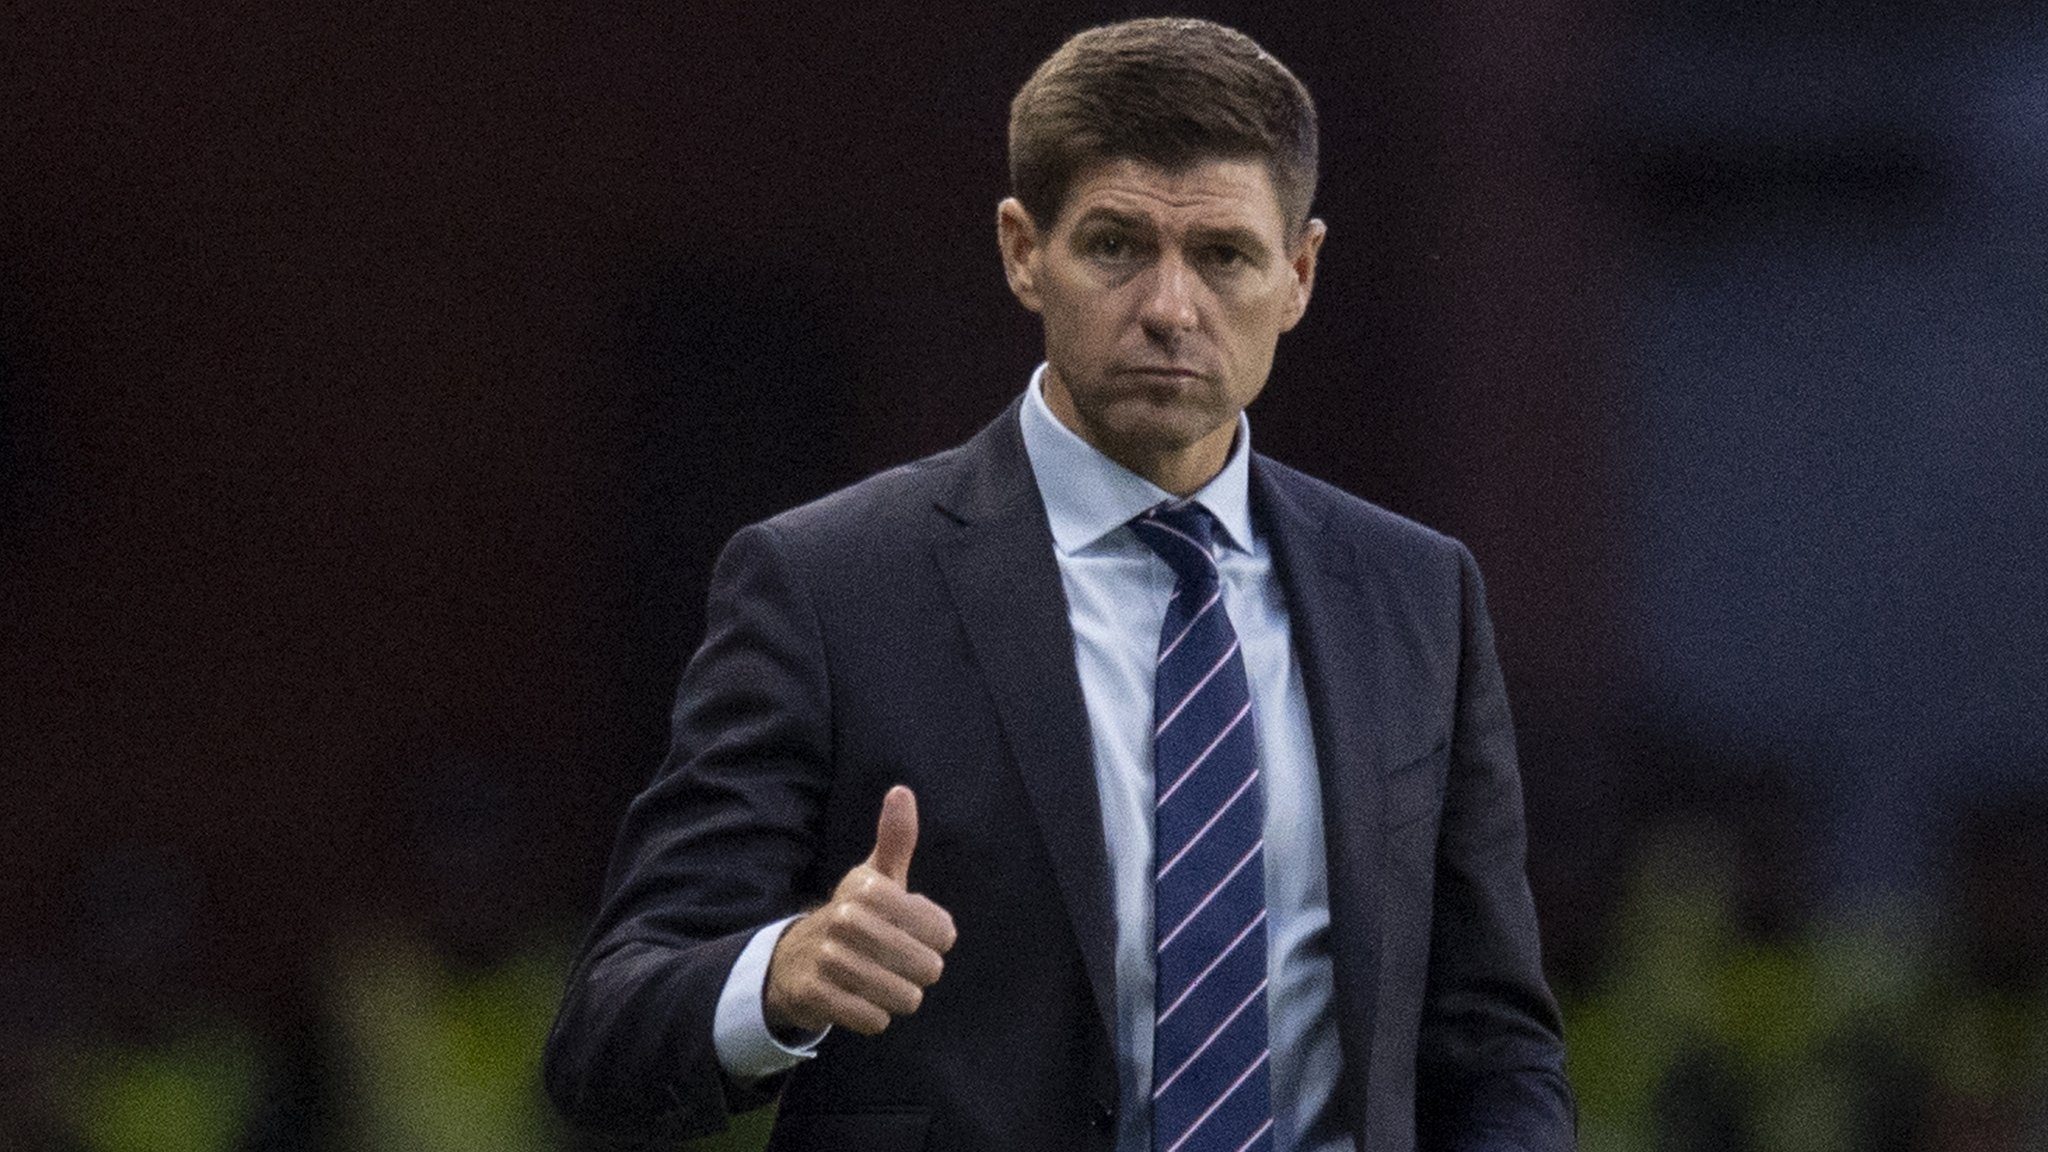 'Gerrard's Rangers have taken immense strides'